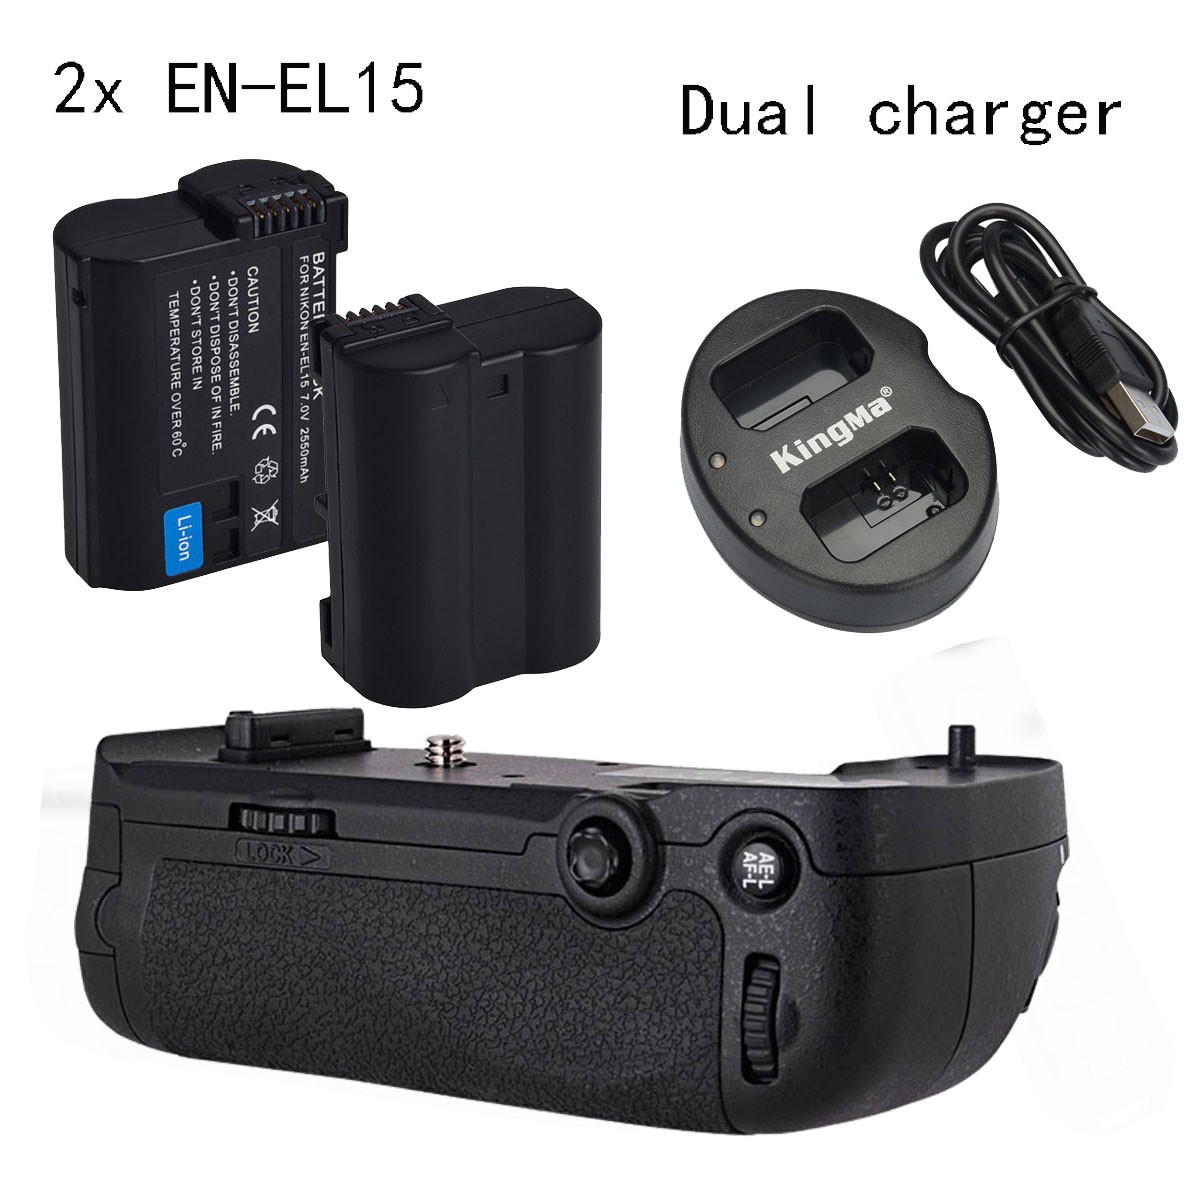 Meike vertical Battery Grip MK-D800 MK D800 for Nikon D800 D810 as MB-D12 + 2*EN-EL15 + Dual Charger dste mb d12 multi power battery grip for nikon d800 d800e d810 camera black